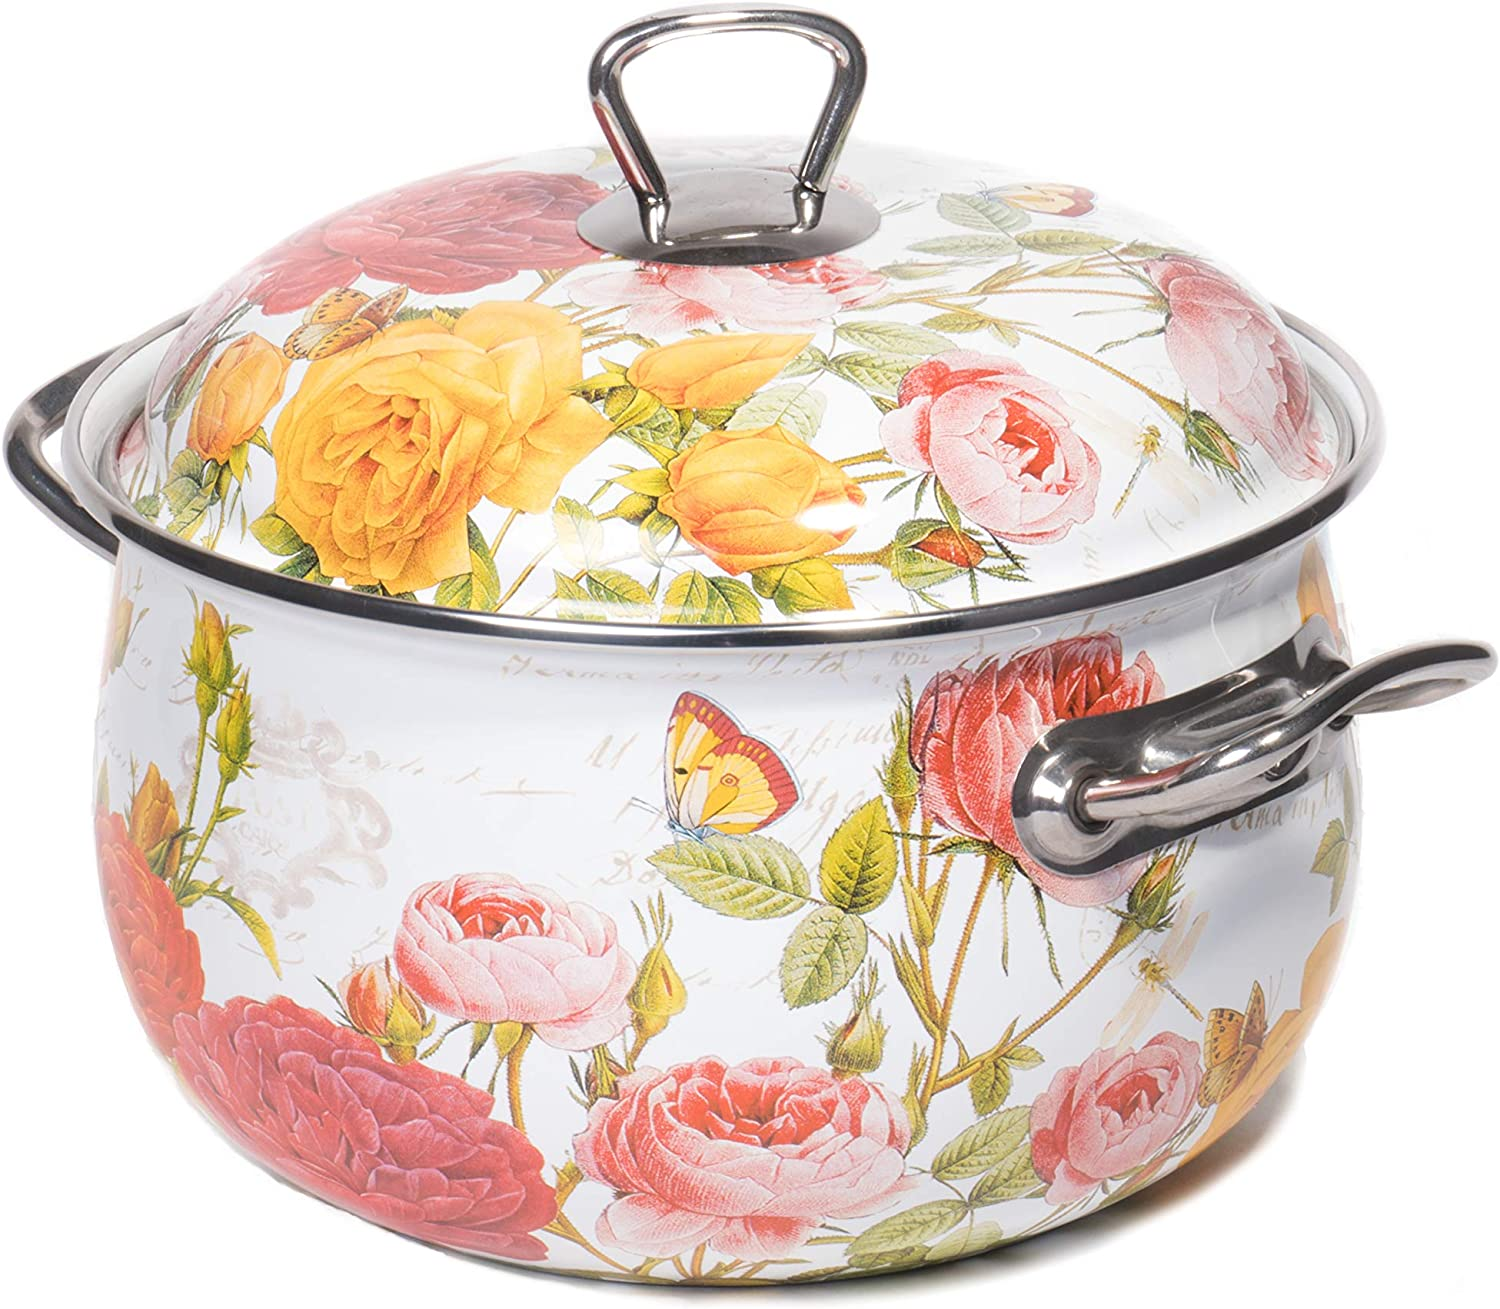 Red Co. Enamel On Steel Round Covered Stockpot, Pasta Stock Stew Soup Casserole Dish Lid, Up to 6.5 Quarts - 24 cm (pinks)